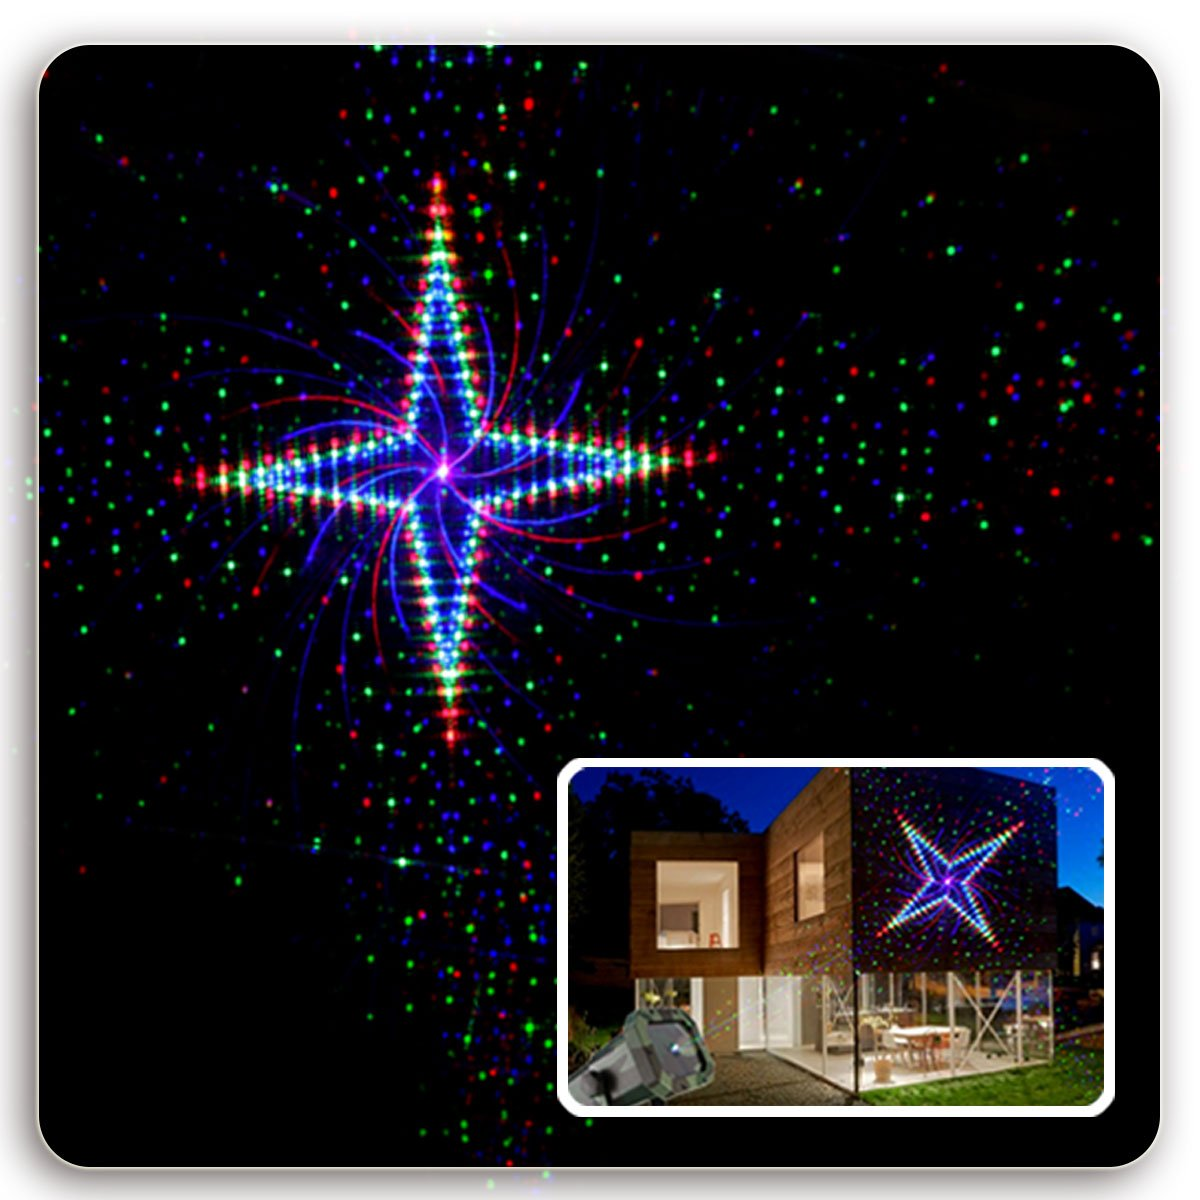 EVA Logik Outdoor Waterproof Laser Projector Light, Moving RGB 20 Patterns, with RF Remote Control & Timer, Perfect for Lawn, Party, Garden Decoration by Eva logik (Image #5)